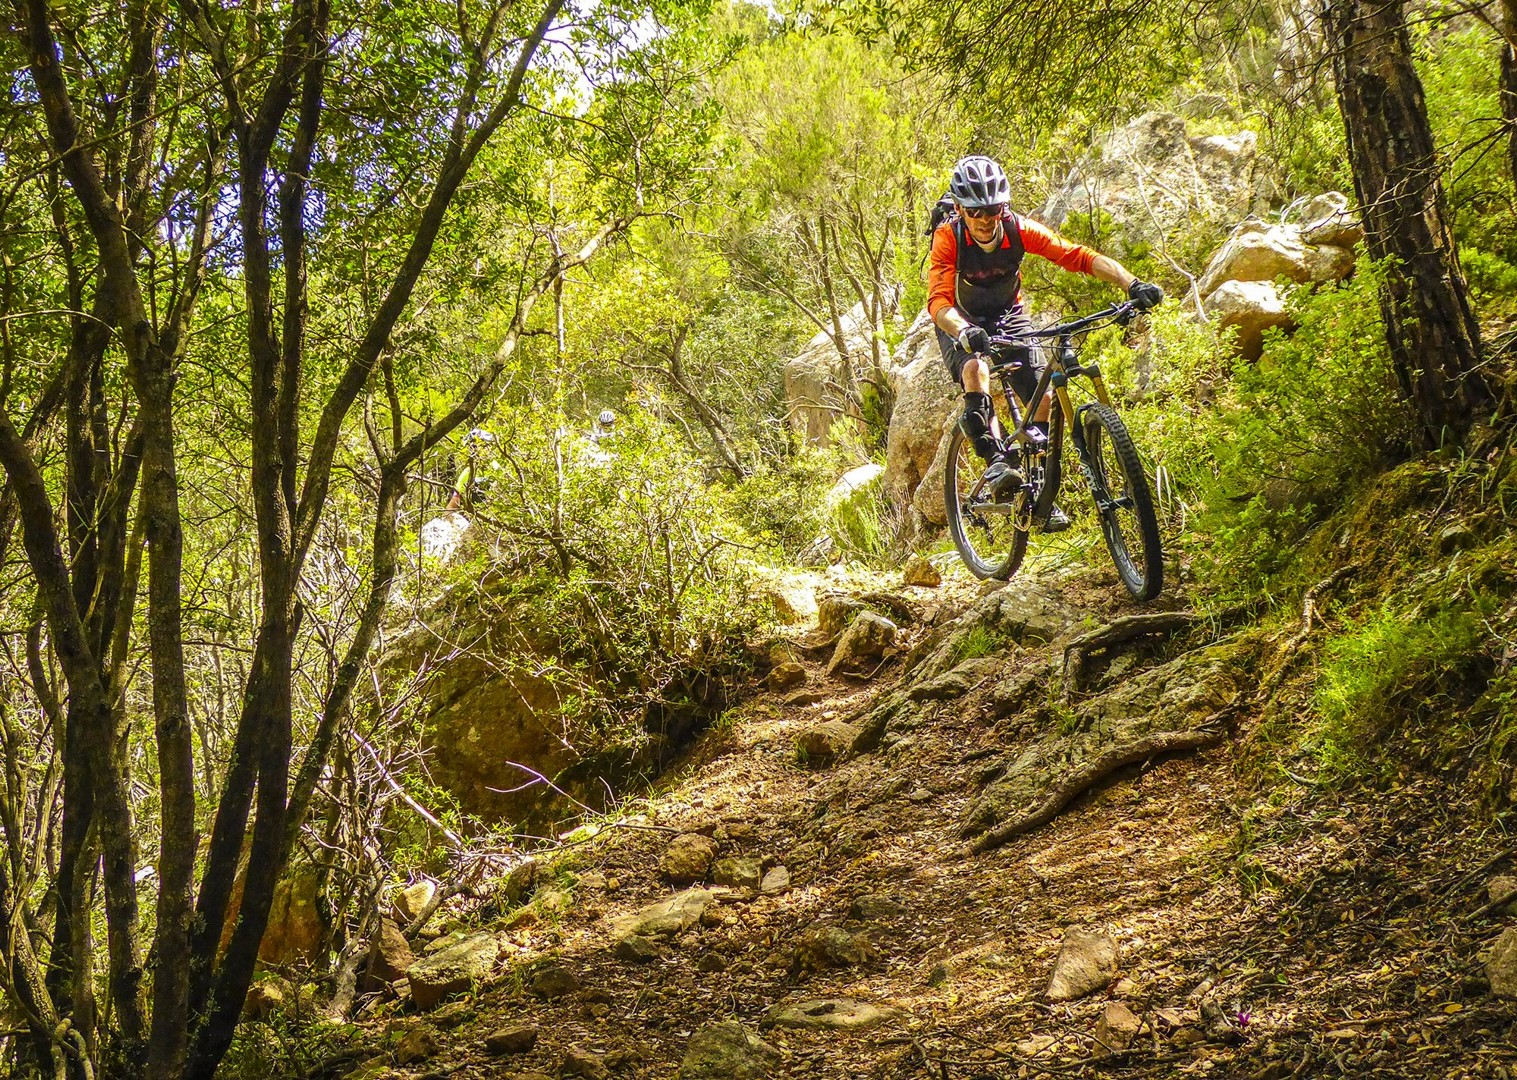 dirt-track-technical-mountain-biking-tour-sardinia-italy-self-guided - Italy - Sardinia - Coast to Coast - Self-Guided Mountain Bike Holiday - Italia Mountain Biking